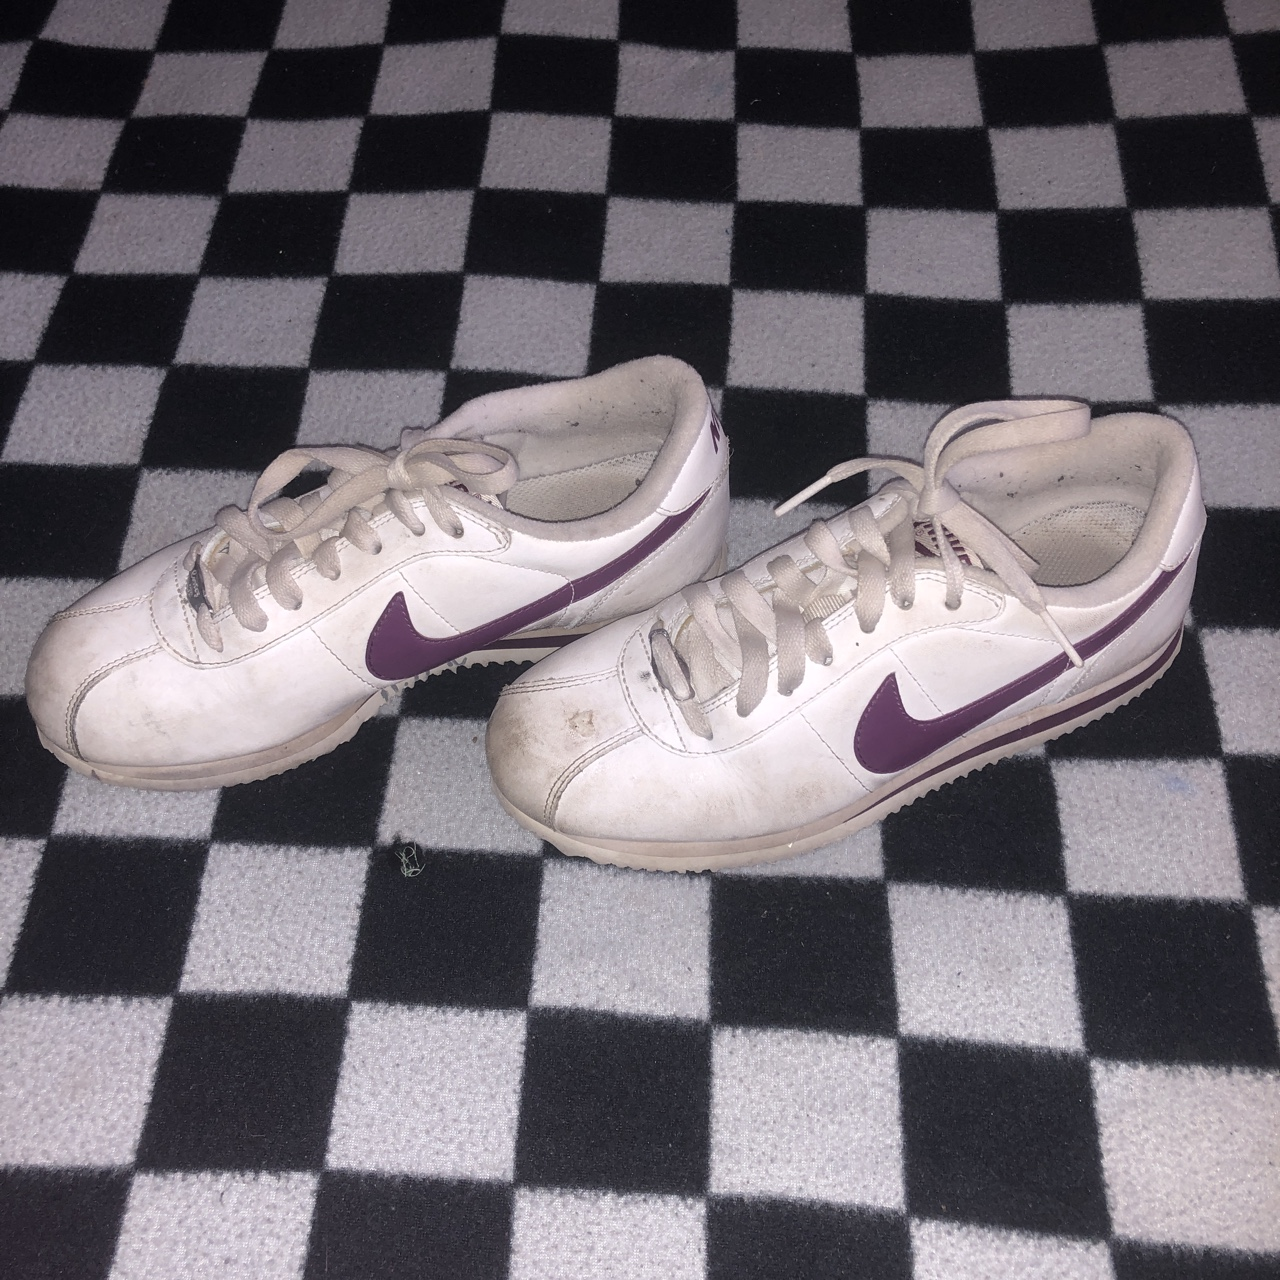 online retailer d2f83 fe4de 90's Nike Cortez shoes. they have a small scuff on... - Depop